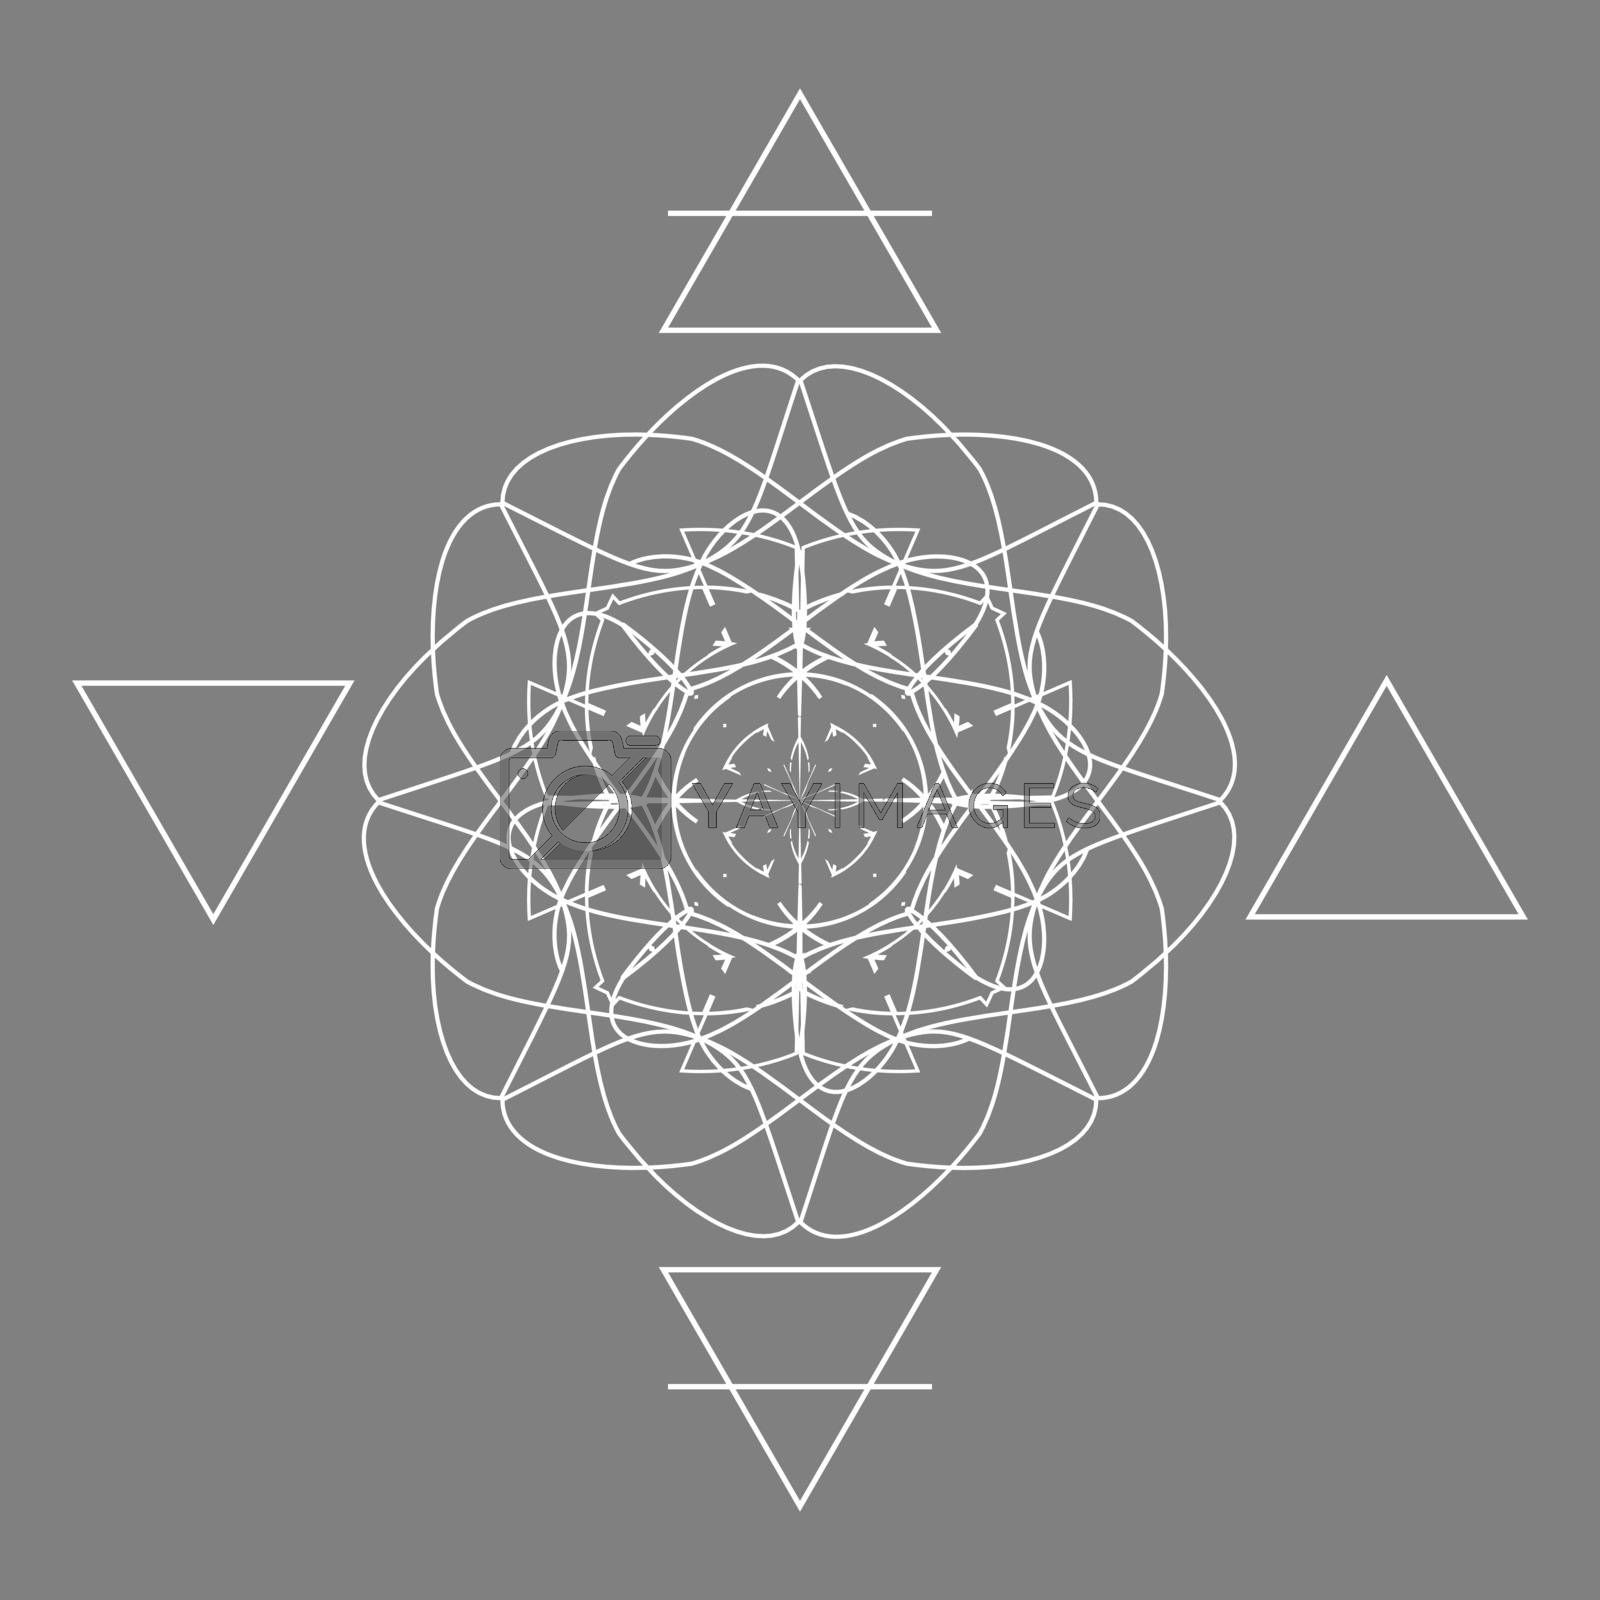 Four nature elements scheme with contour white triangles and abstract flower on grey background